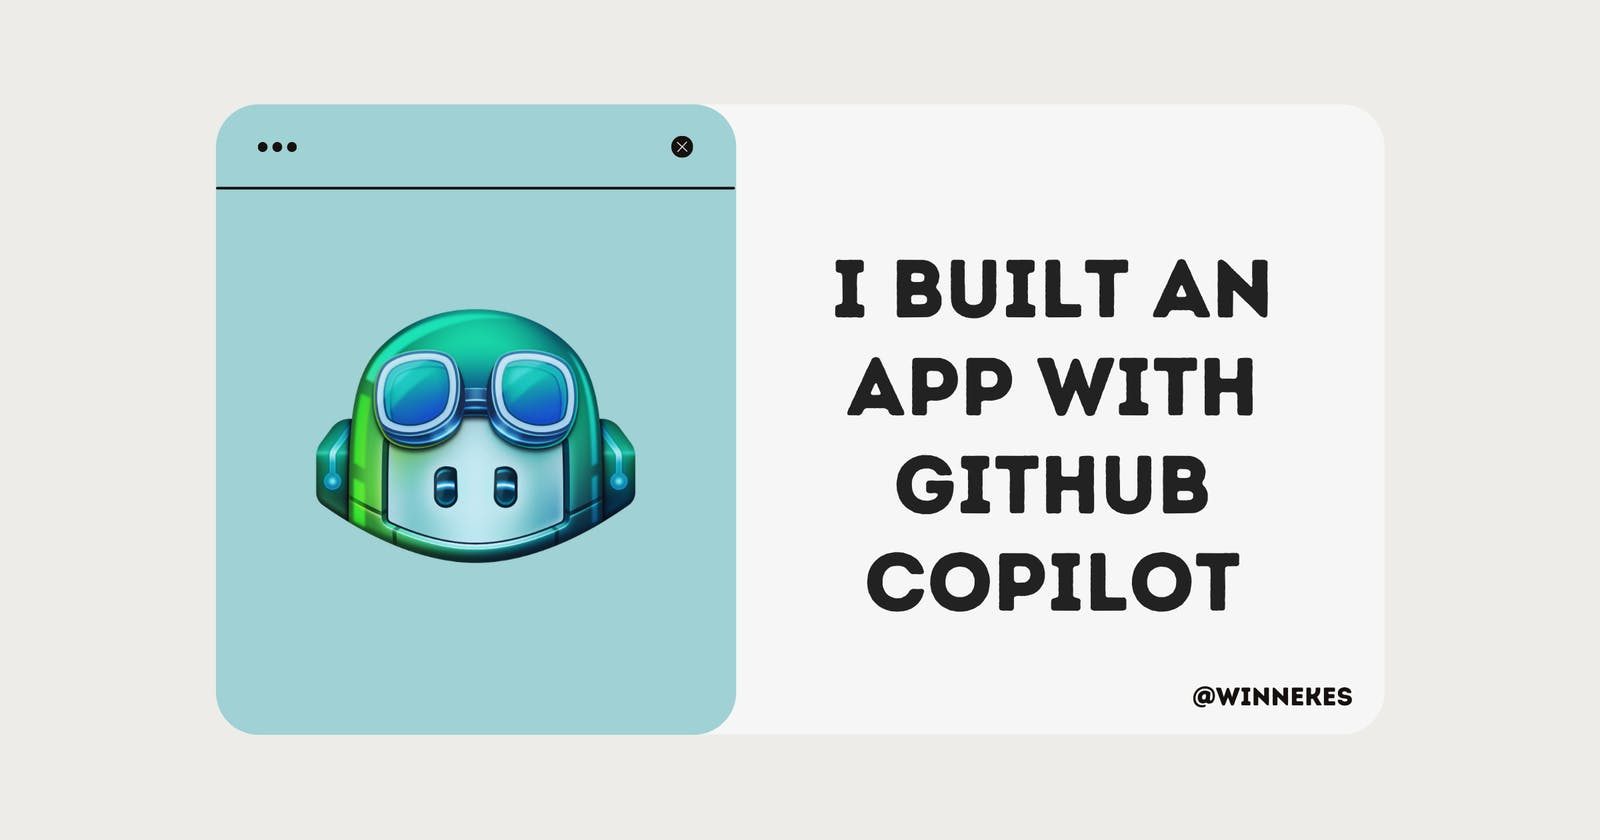 I Built an App with GitHub Copilot, Here's the Result